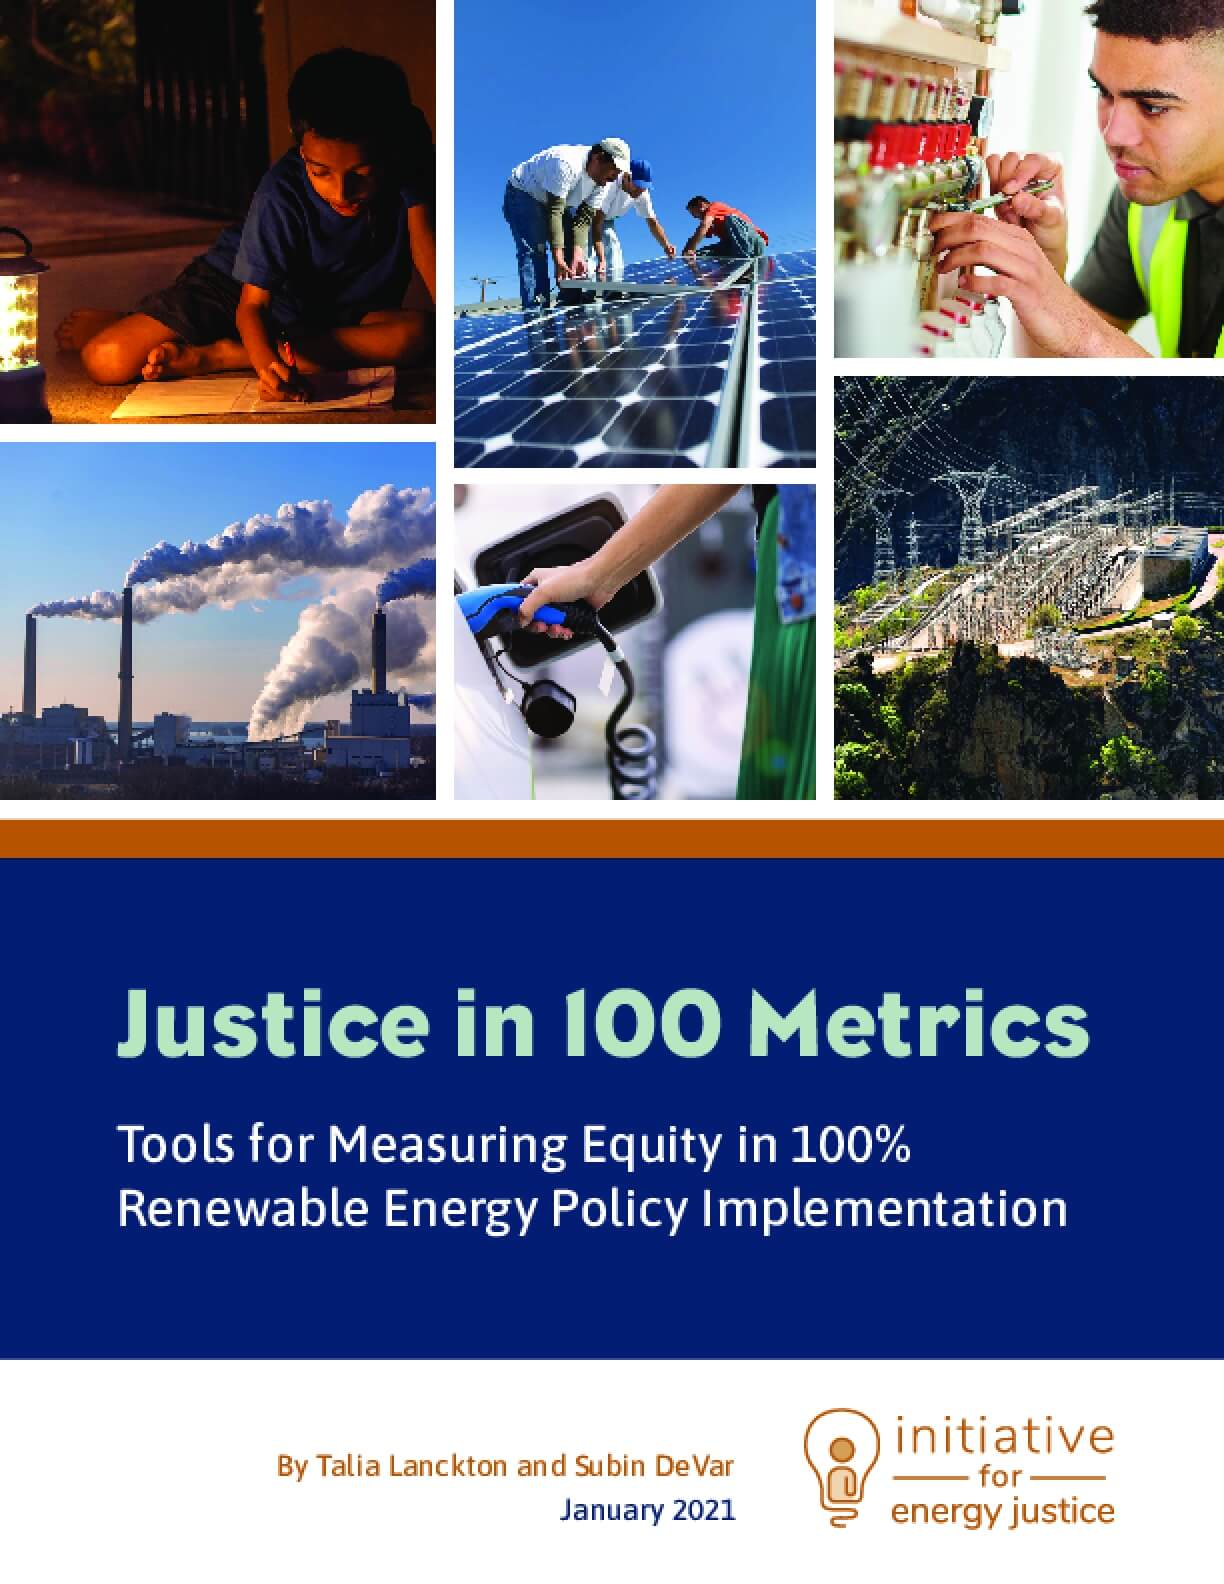 Justice in 100 Metrics: Tools for Measuring Equity in 100% Renewable Energy Policy Implementation